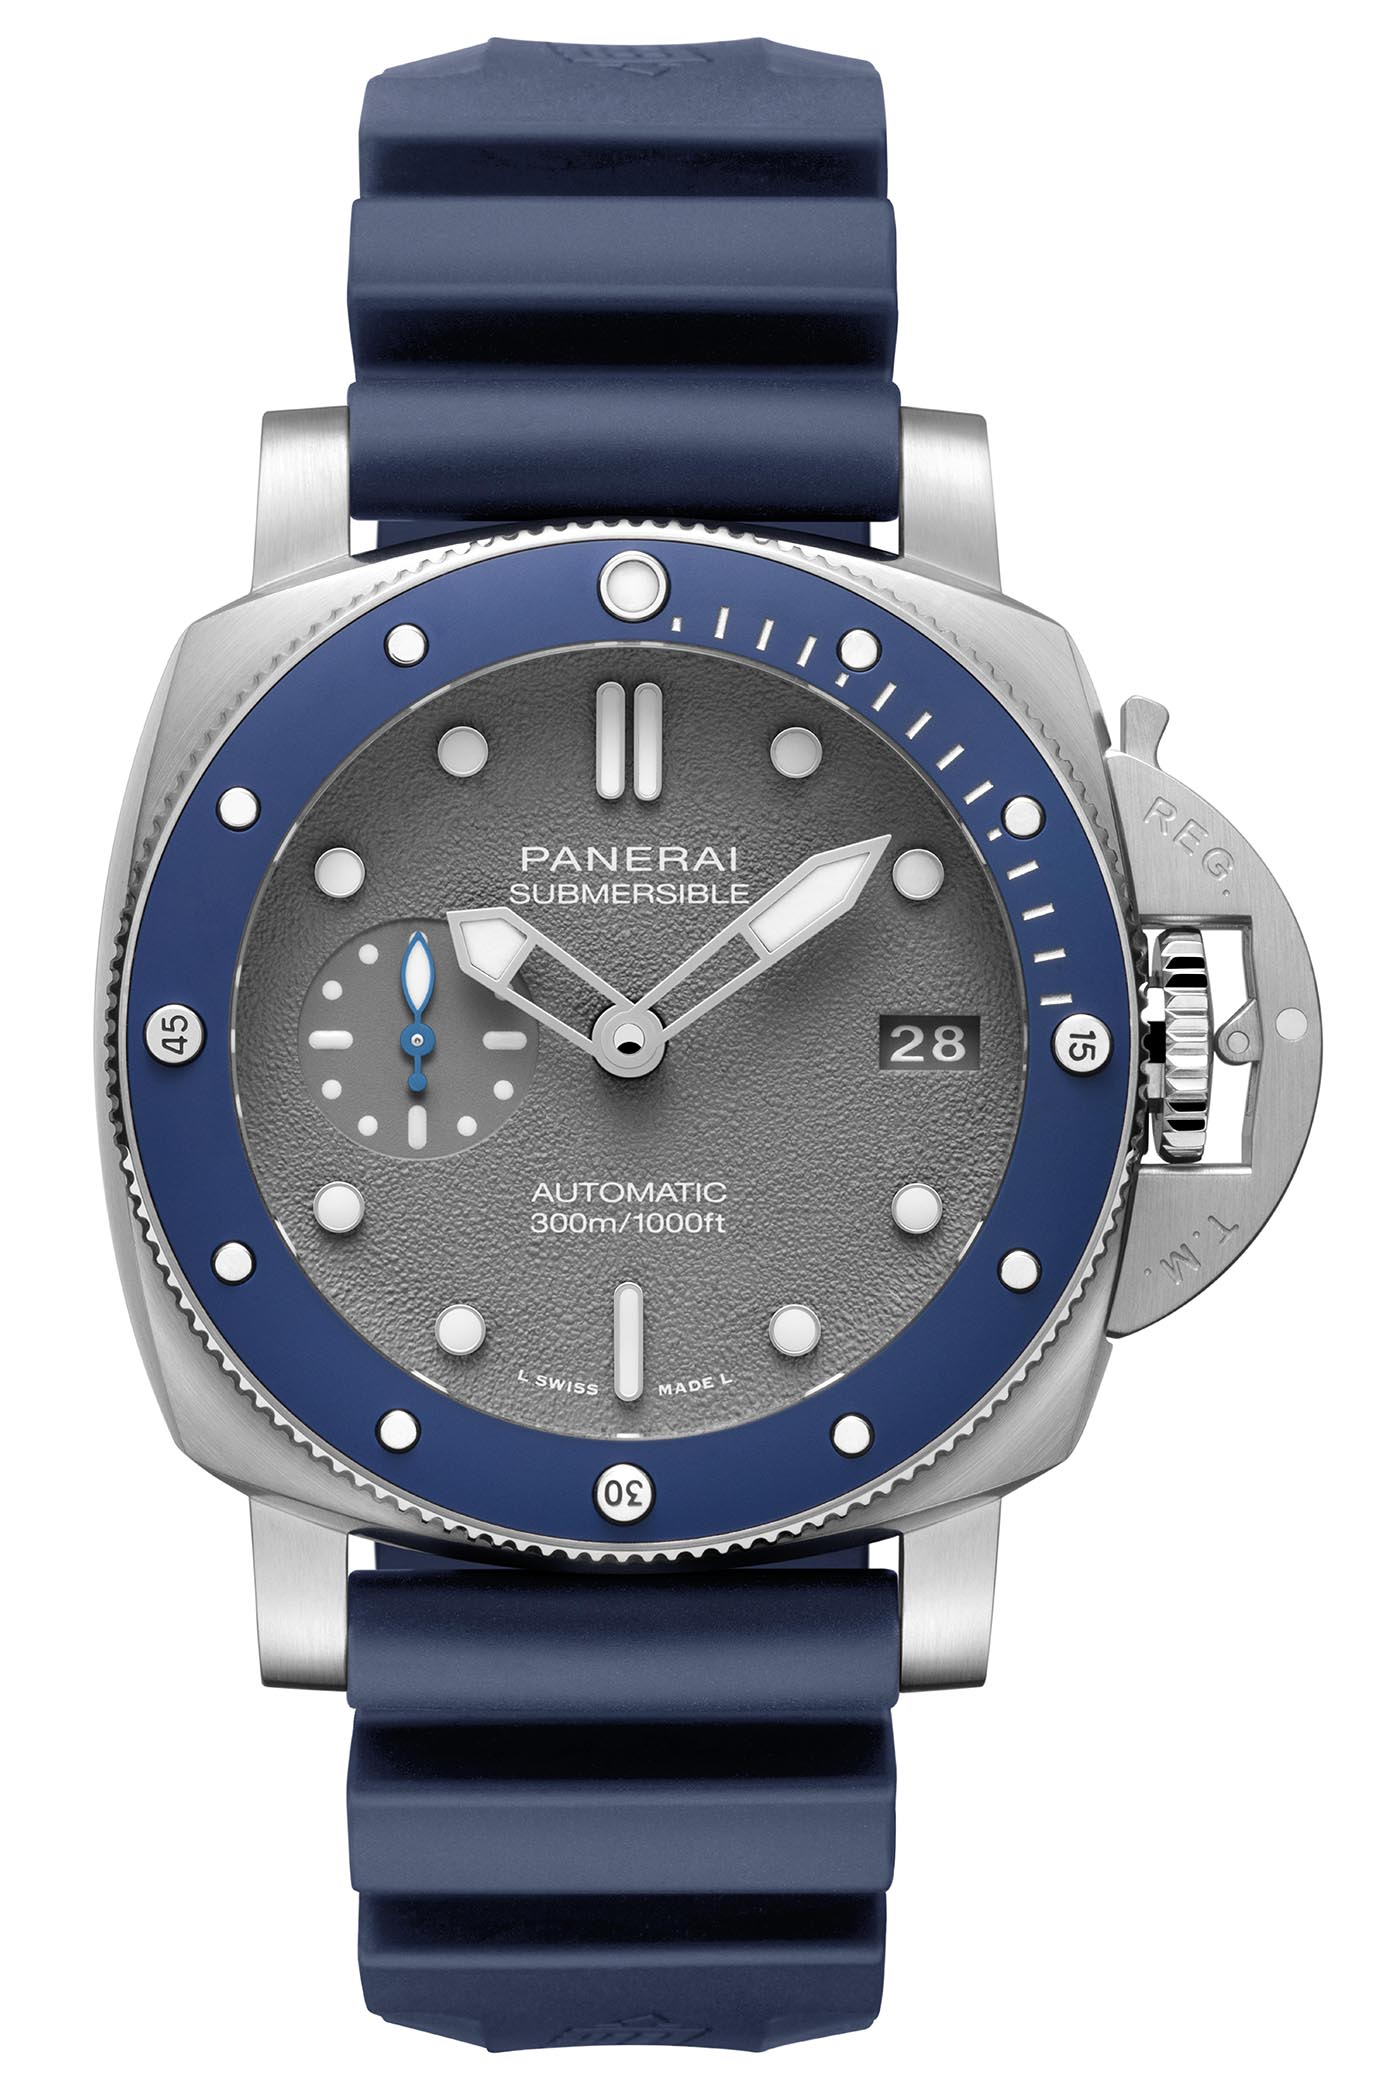 Panerai Submersible 42mm PAM00959 - SIHH 2019 - 2